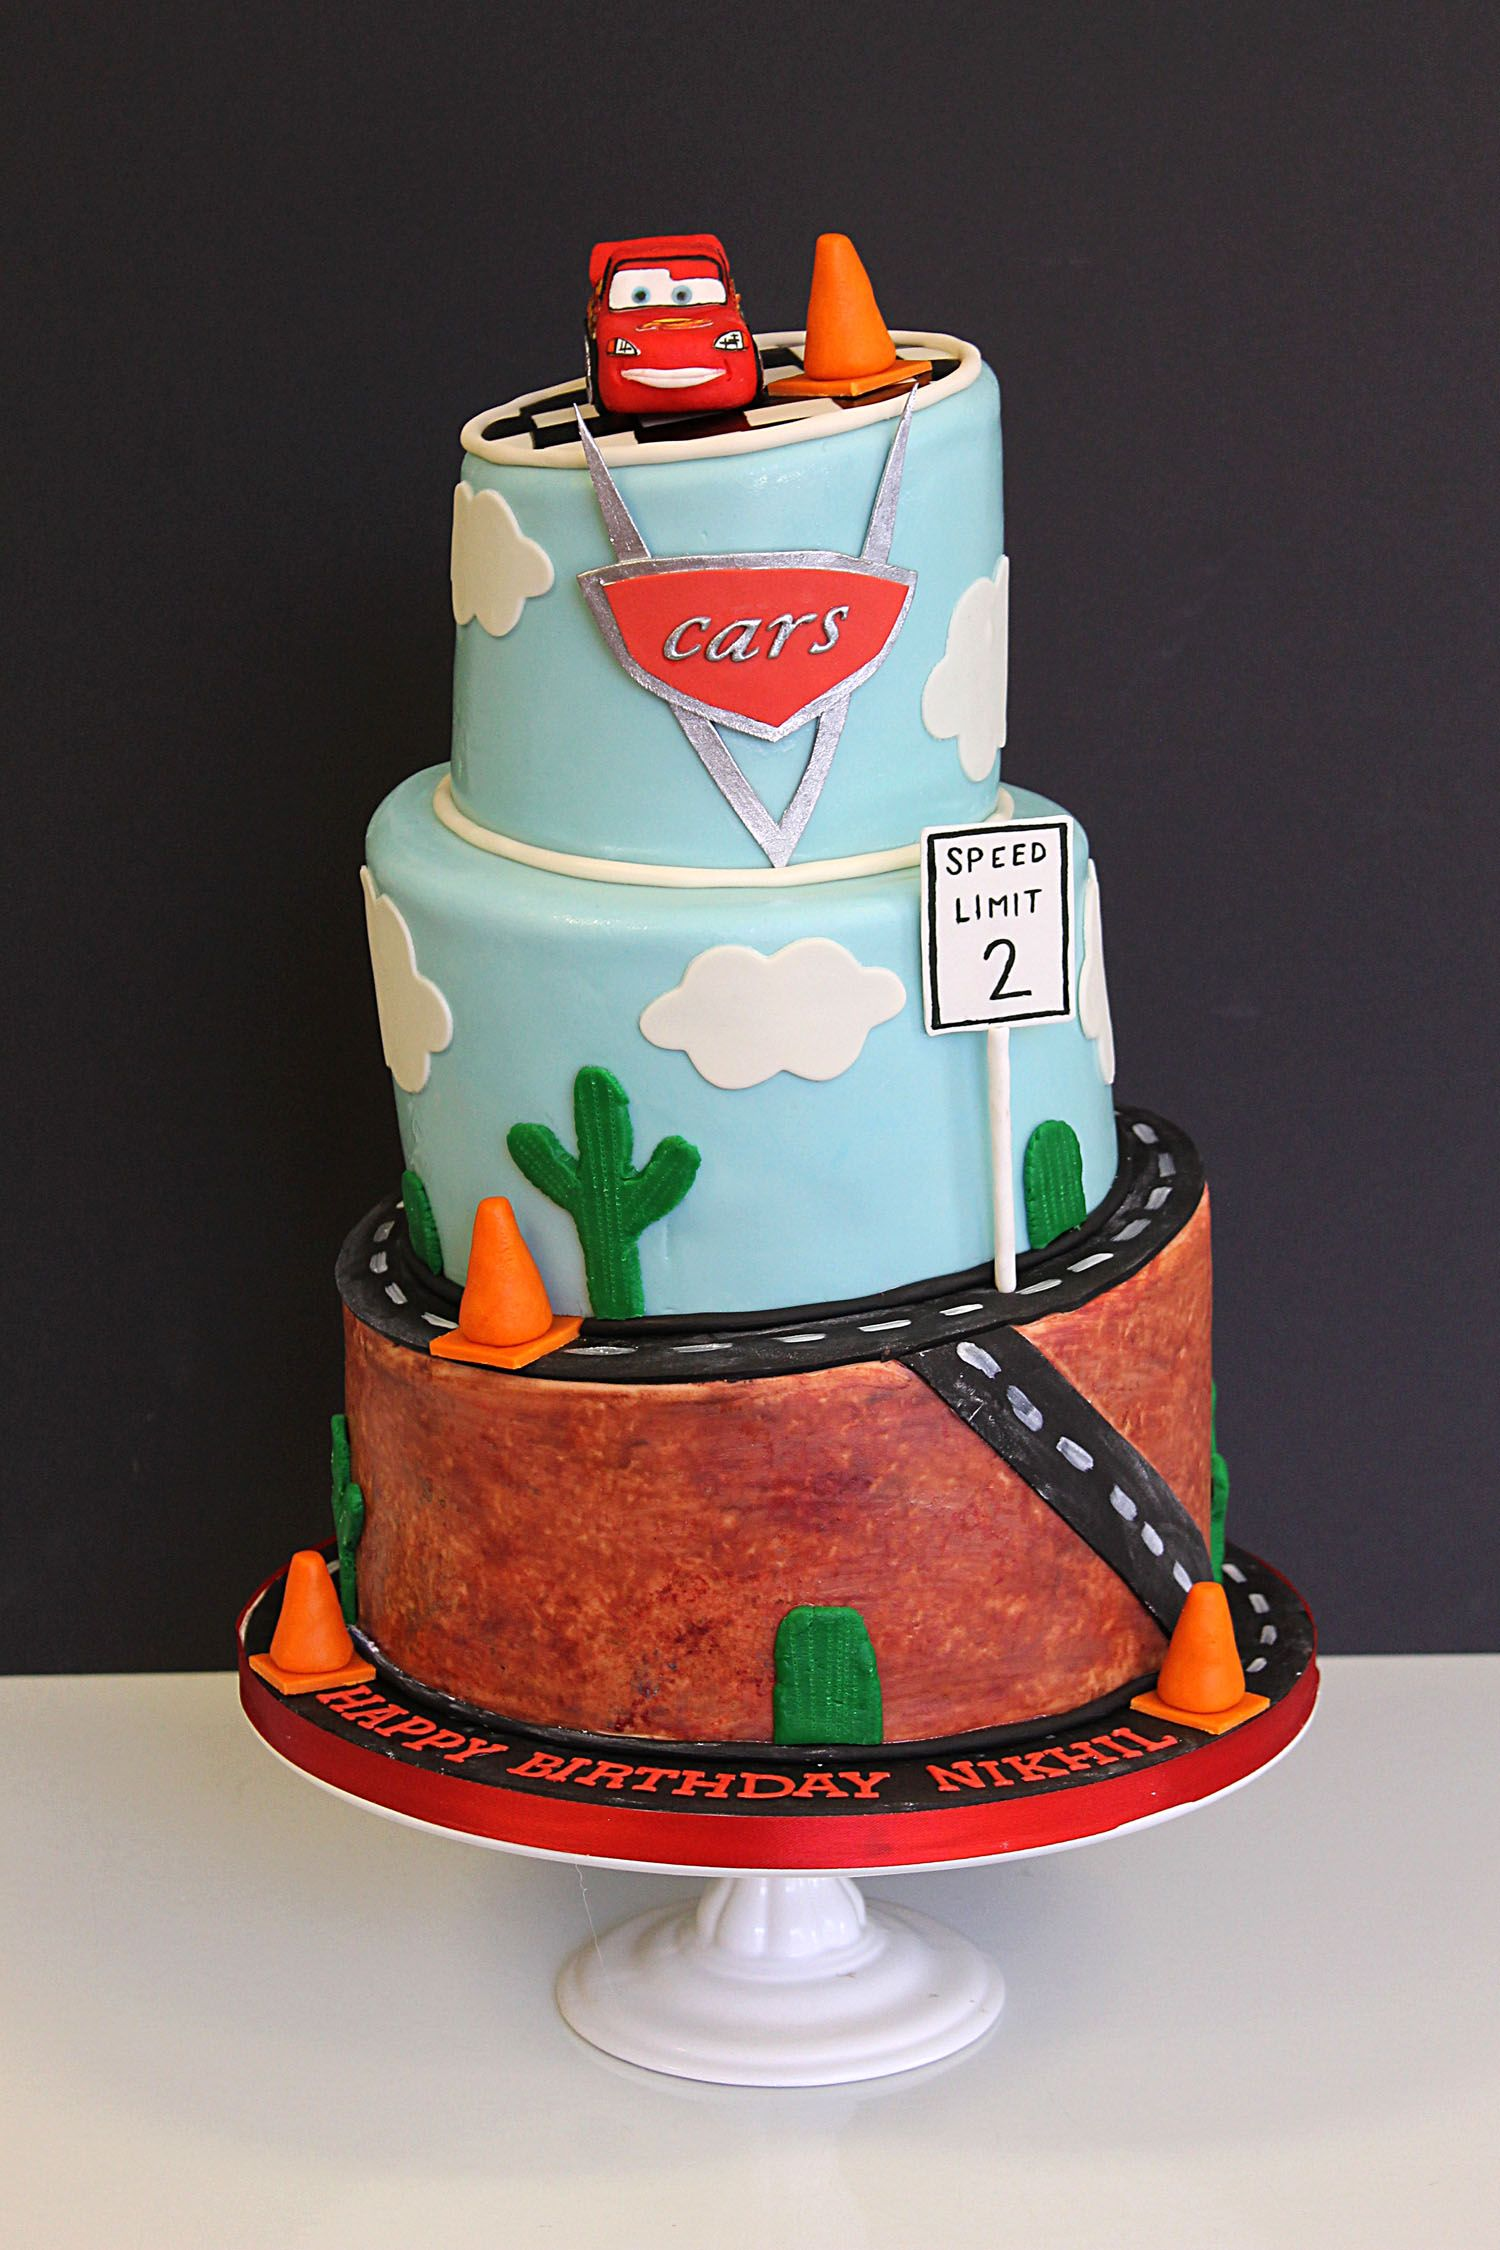 Cars Lightning McQueen Birthday